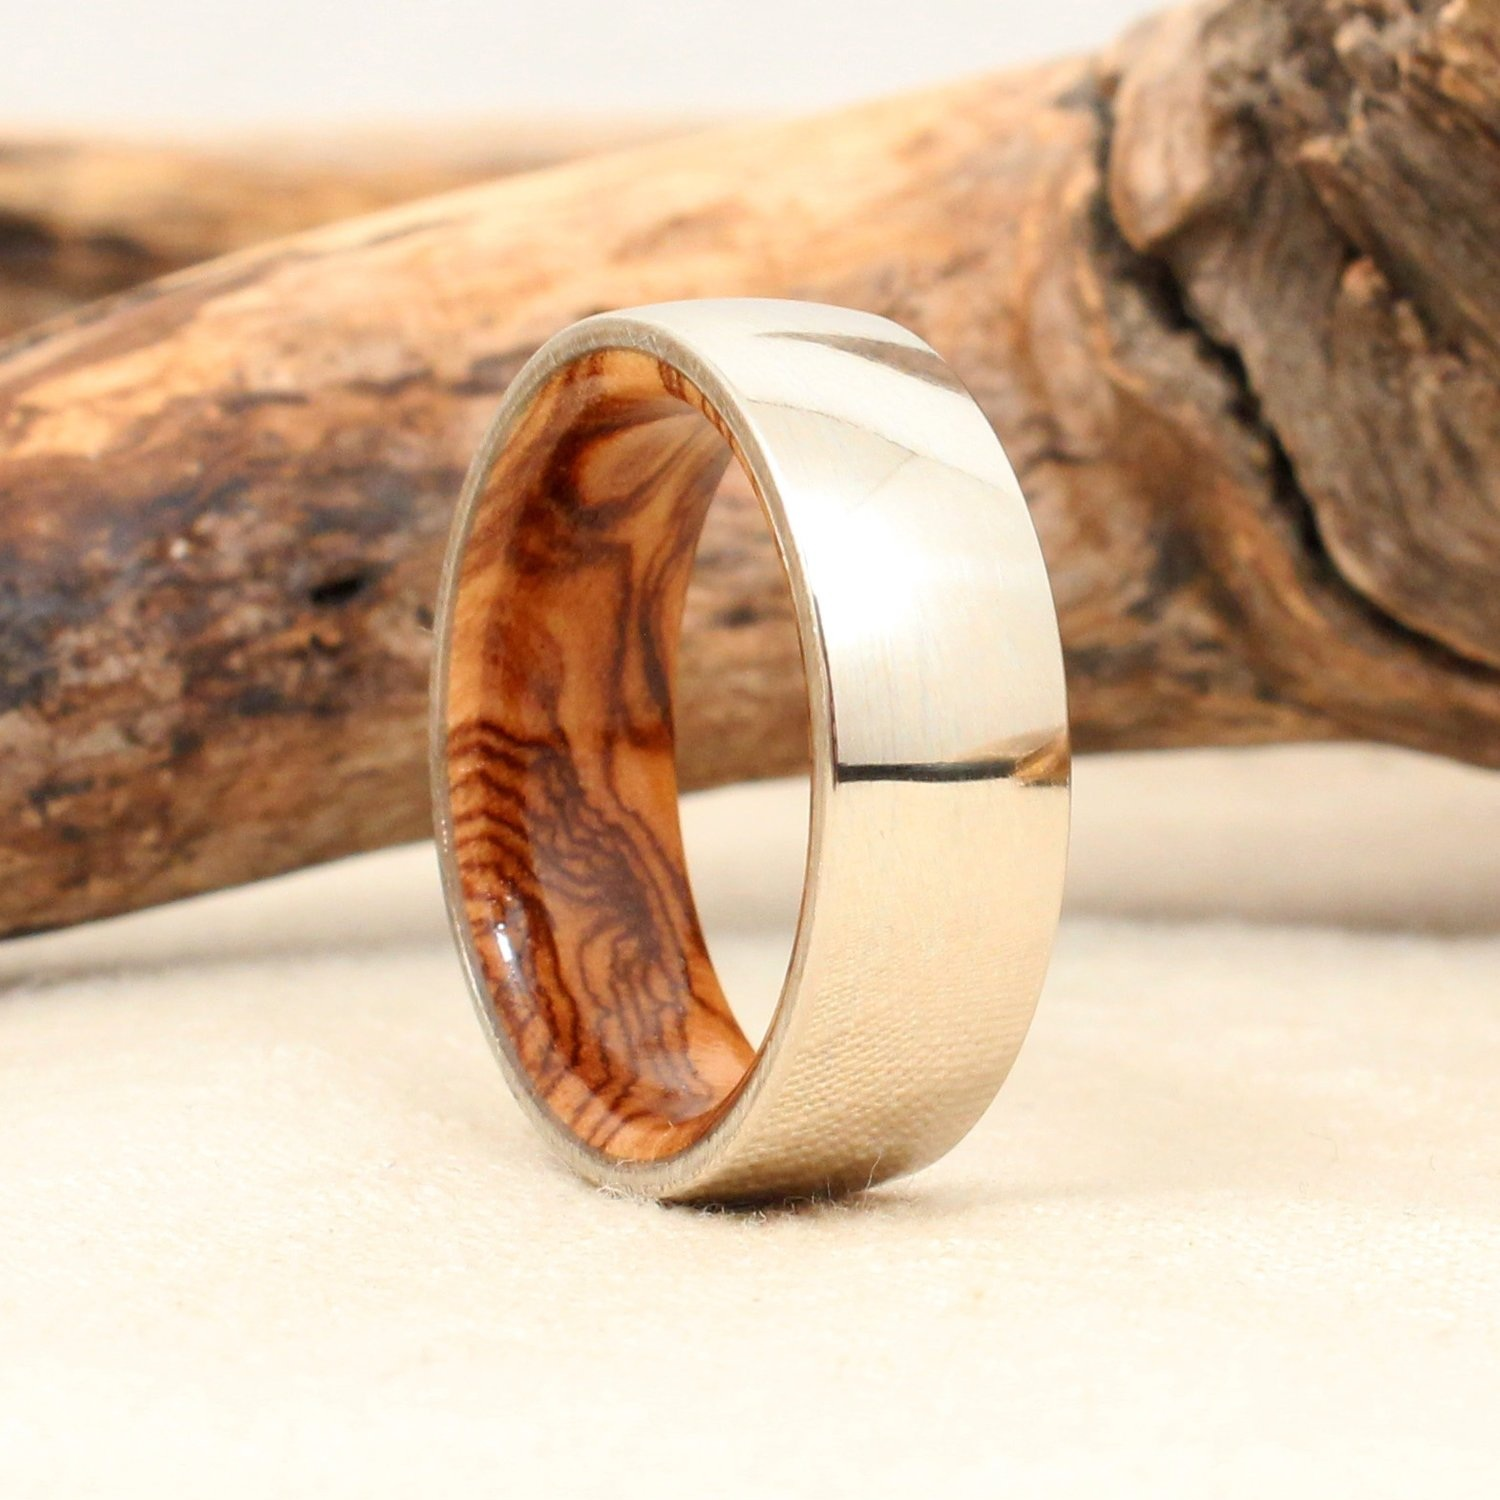 gold-wood-ring-white-bethlehem-olivewood-wedgewood.jpg